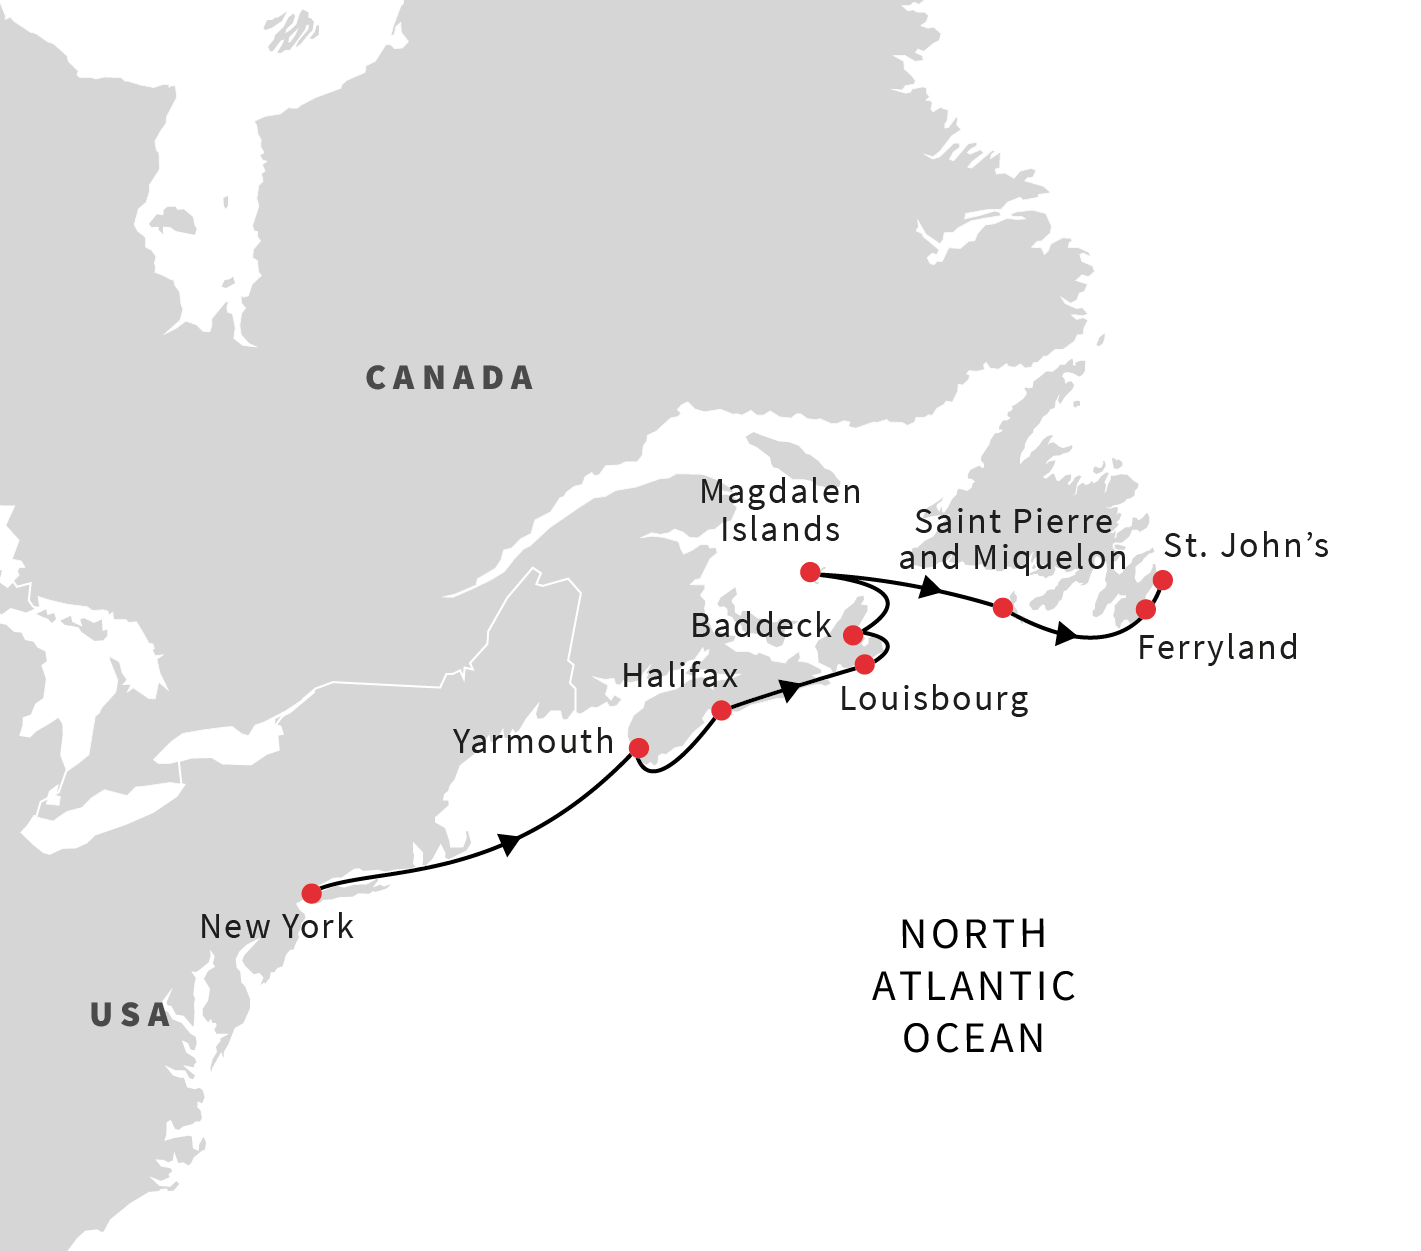 Cruise From New York, USA, To St. John's, Canada (Spring